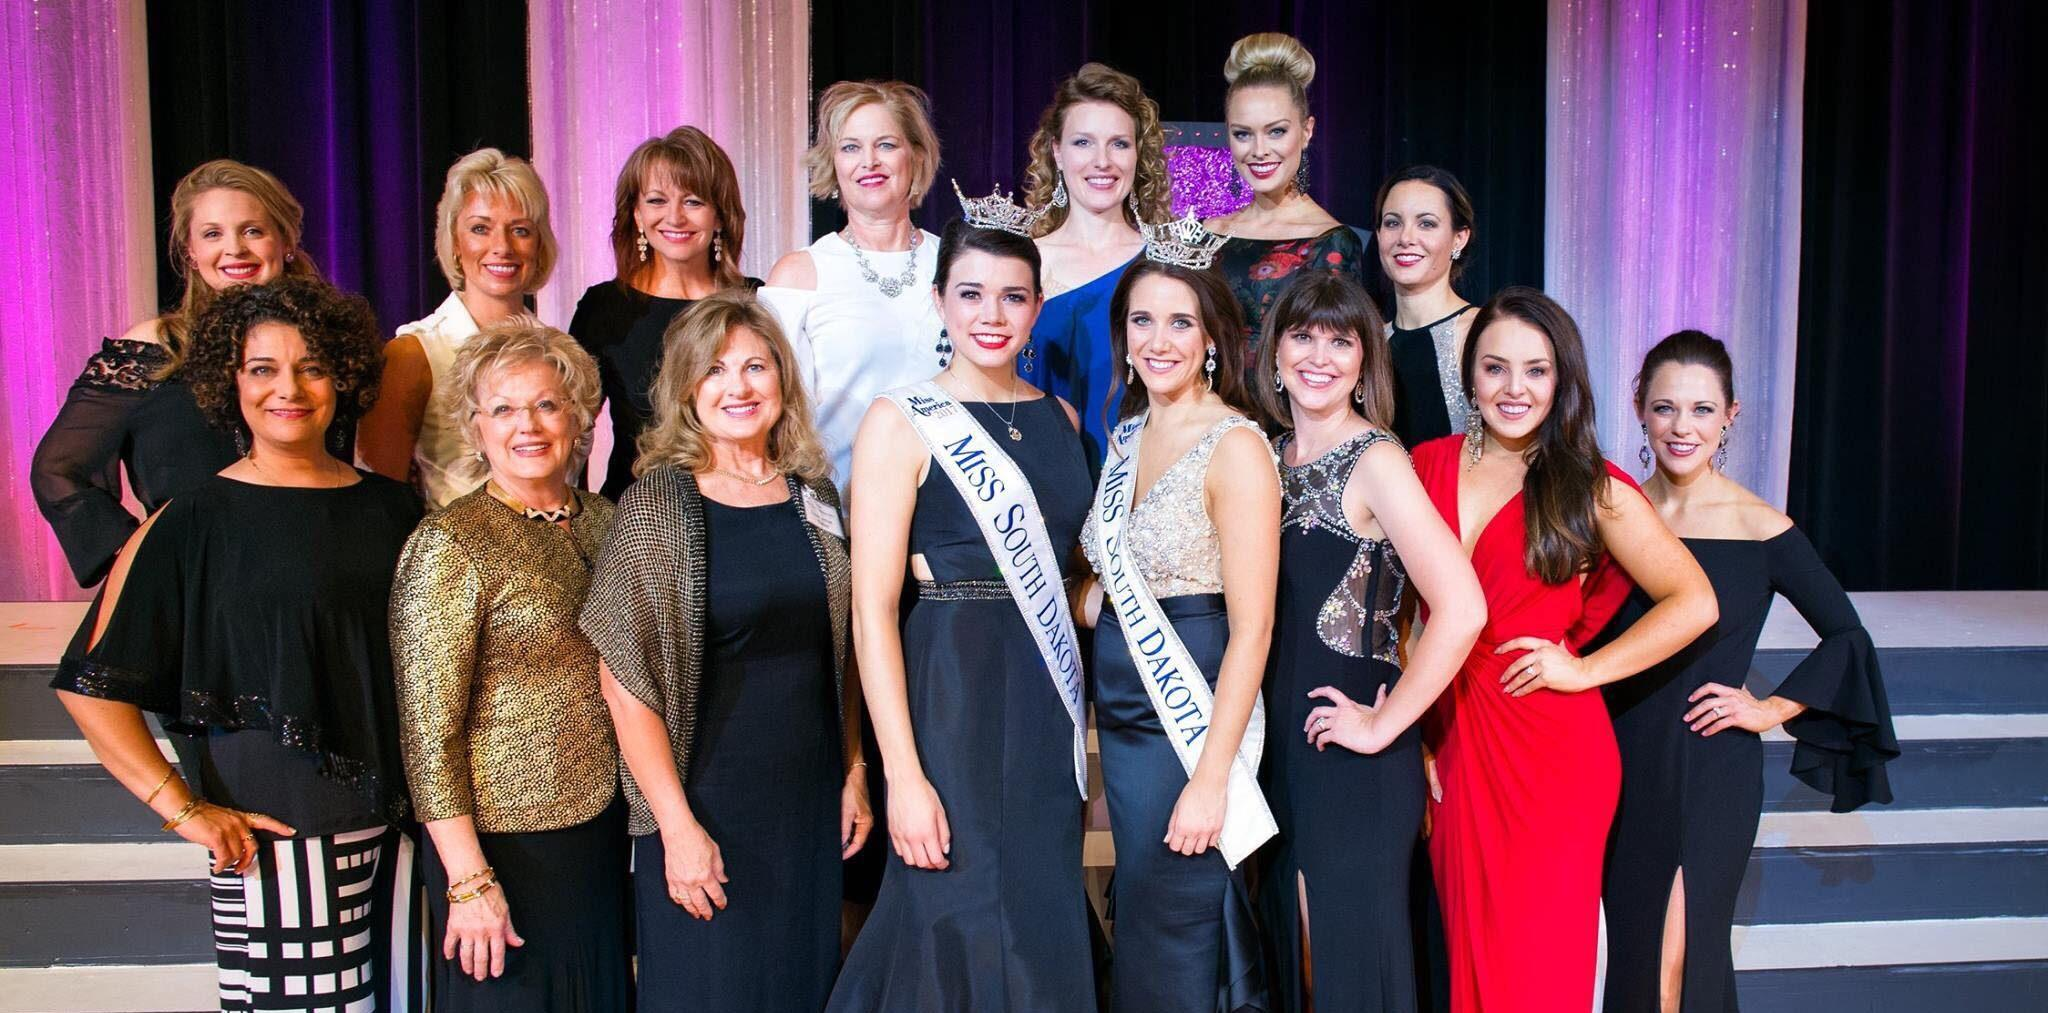 SUBMITTED Miss South Dakota Miranda Mack (front and center) with former Miss South Dakota. Mack only held one local title before going on to be crowned Miss South Dakota.